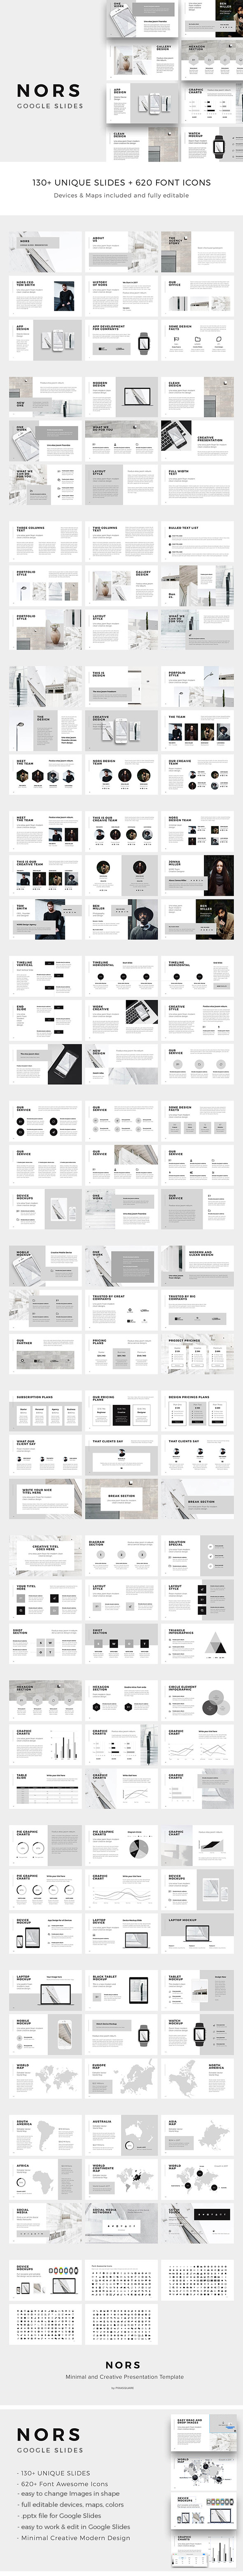 NORS - Google Slides Minimal Template - Google Slides Presentation Templates